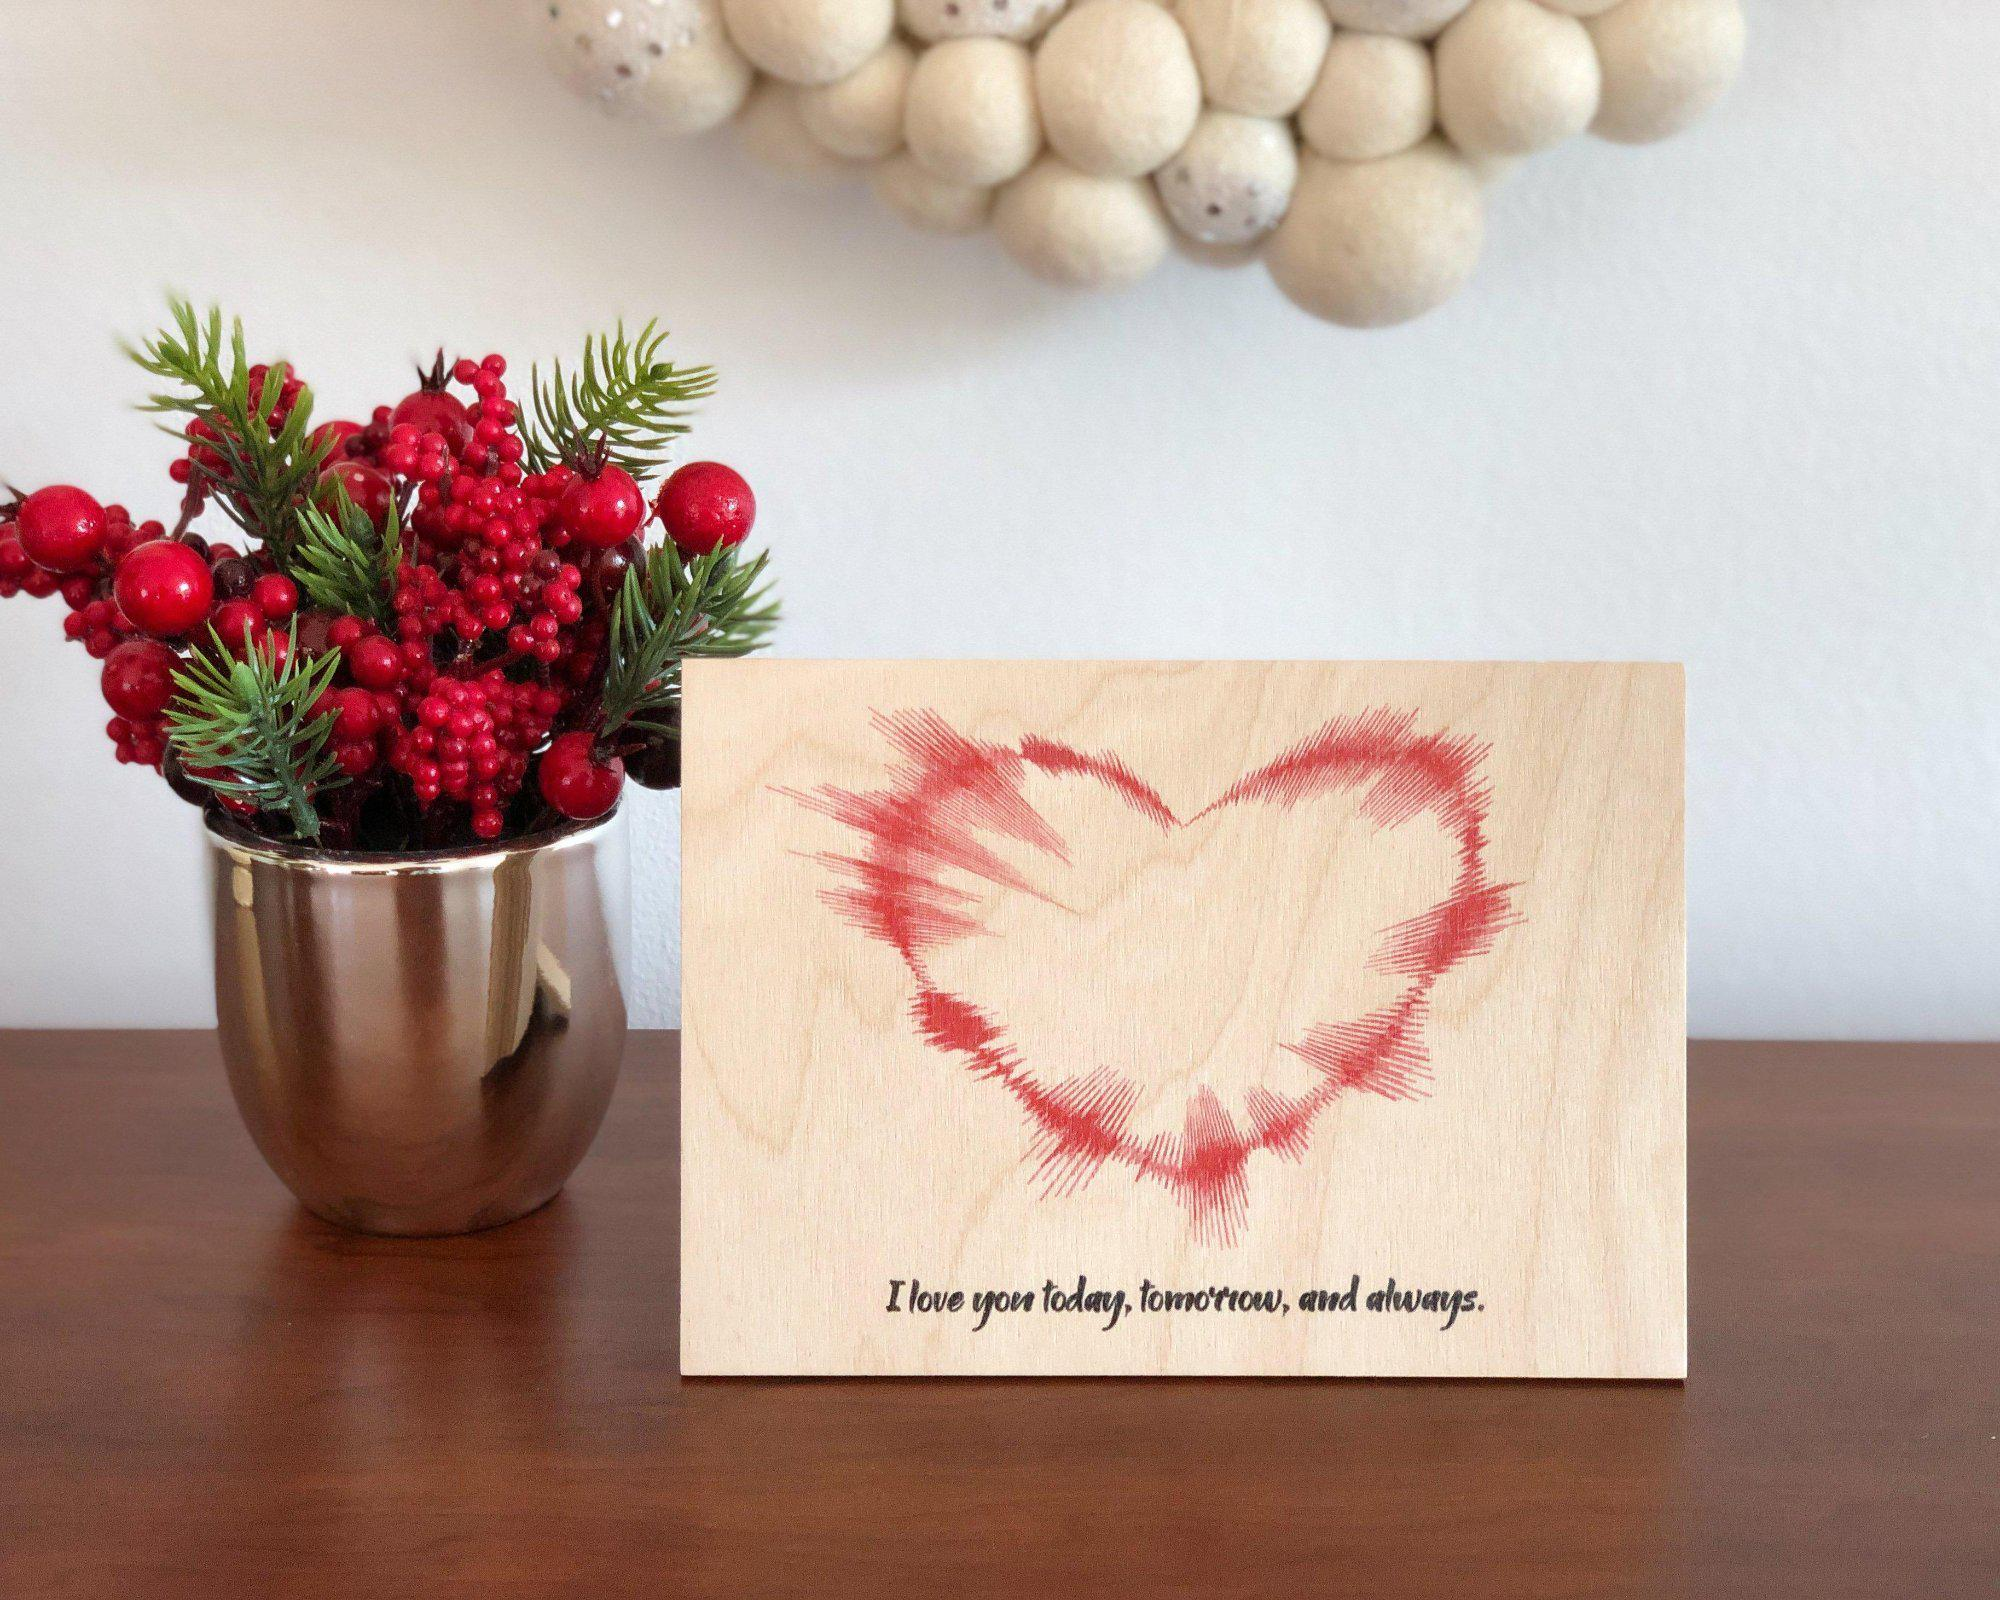 NEW! Christmas Gifts for Her, Heart Shaped Sound Wave Art on Wood, 5th Anniversary Gift - Artsy Voiceprint